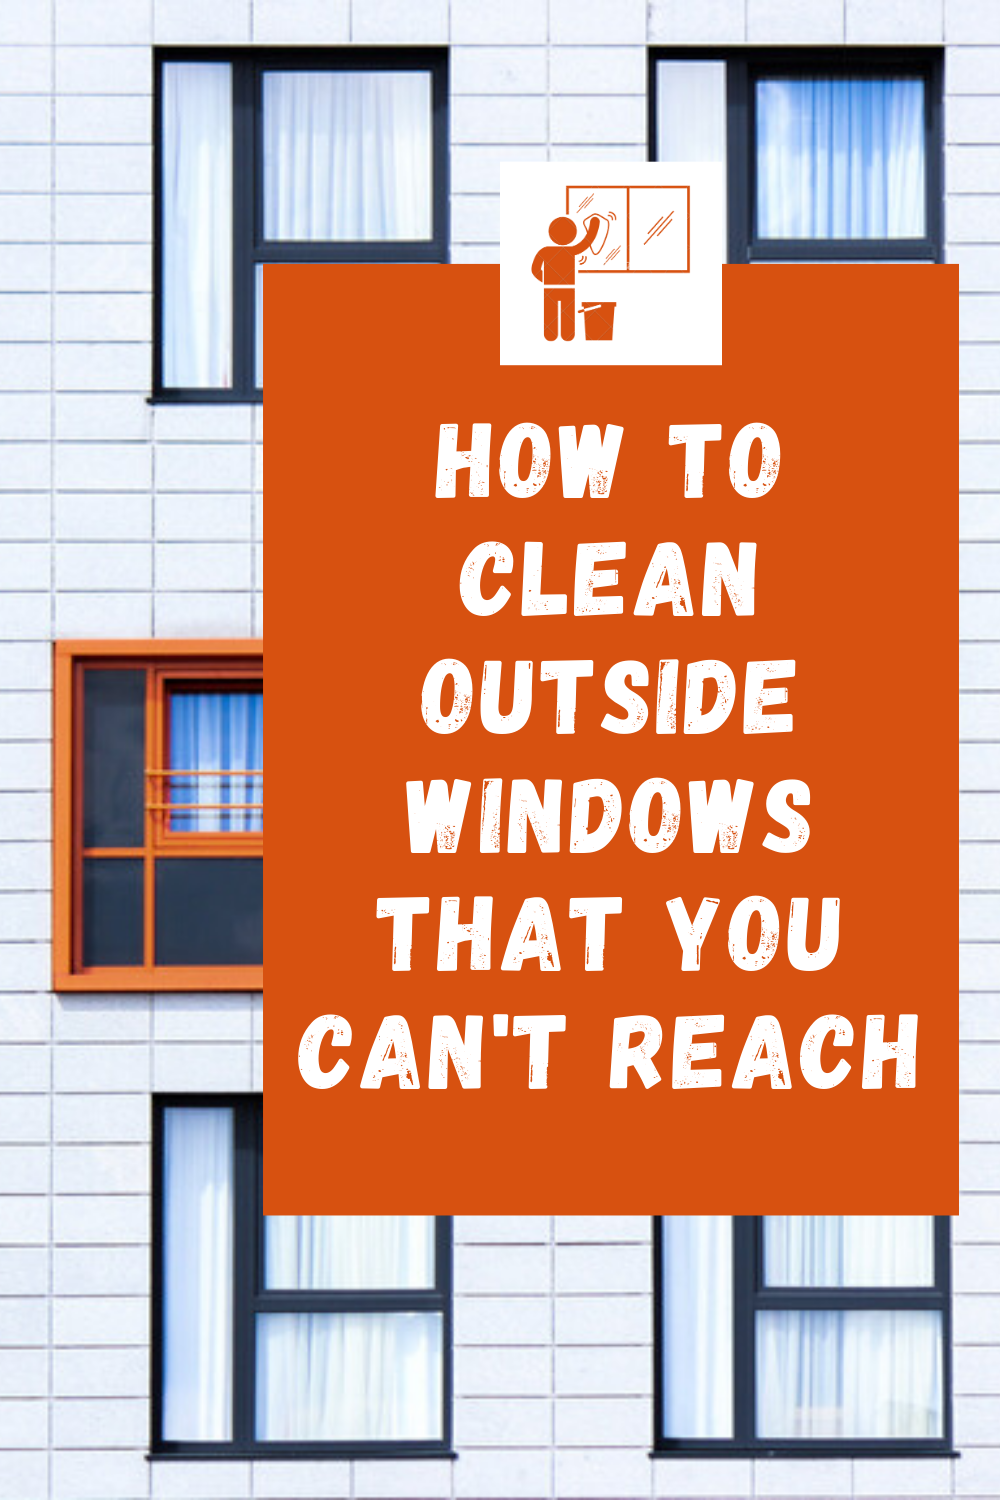 How To Clean Outside Windows That You Can't Reach